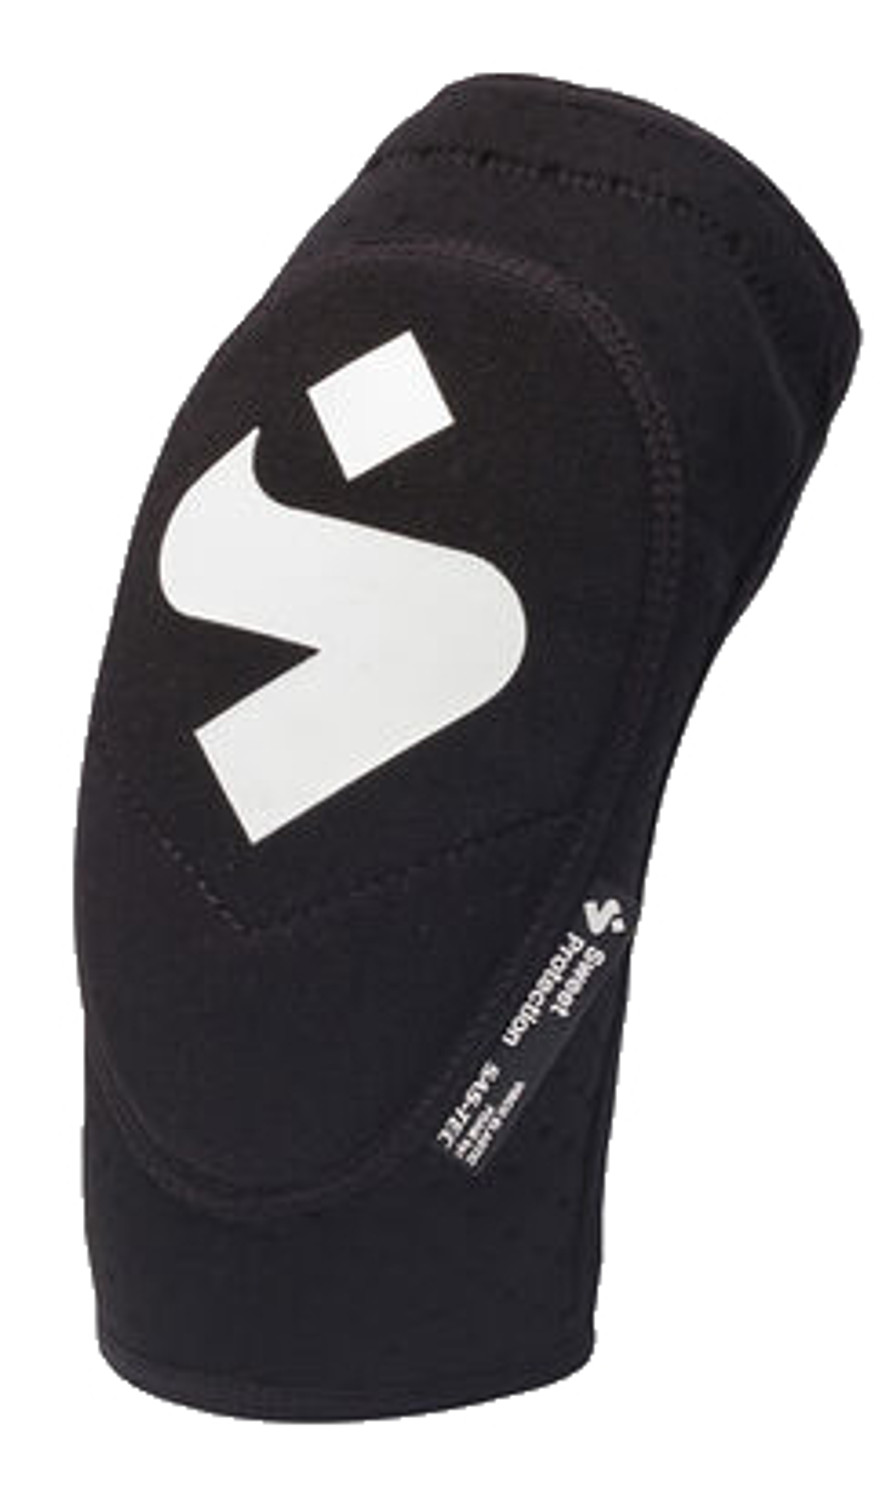 Elbow Guards by Sweet Protection